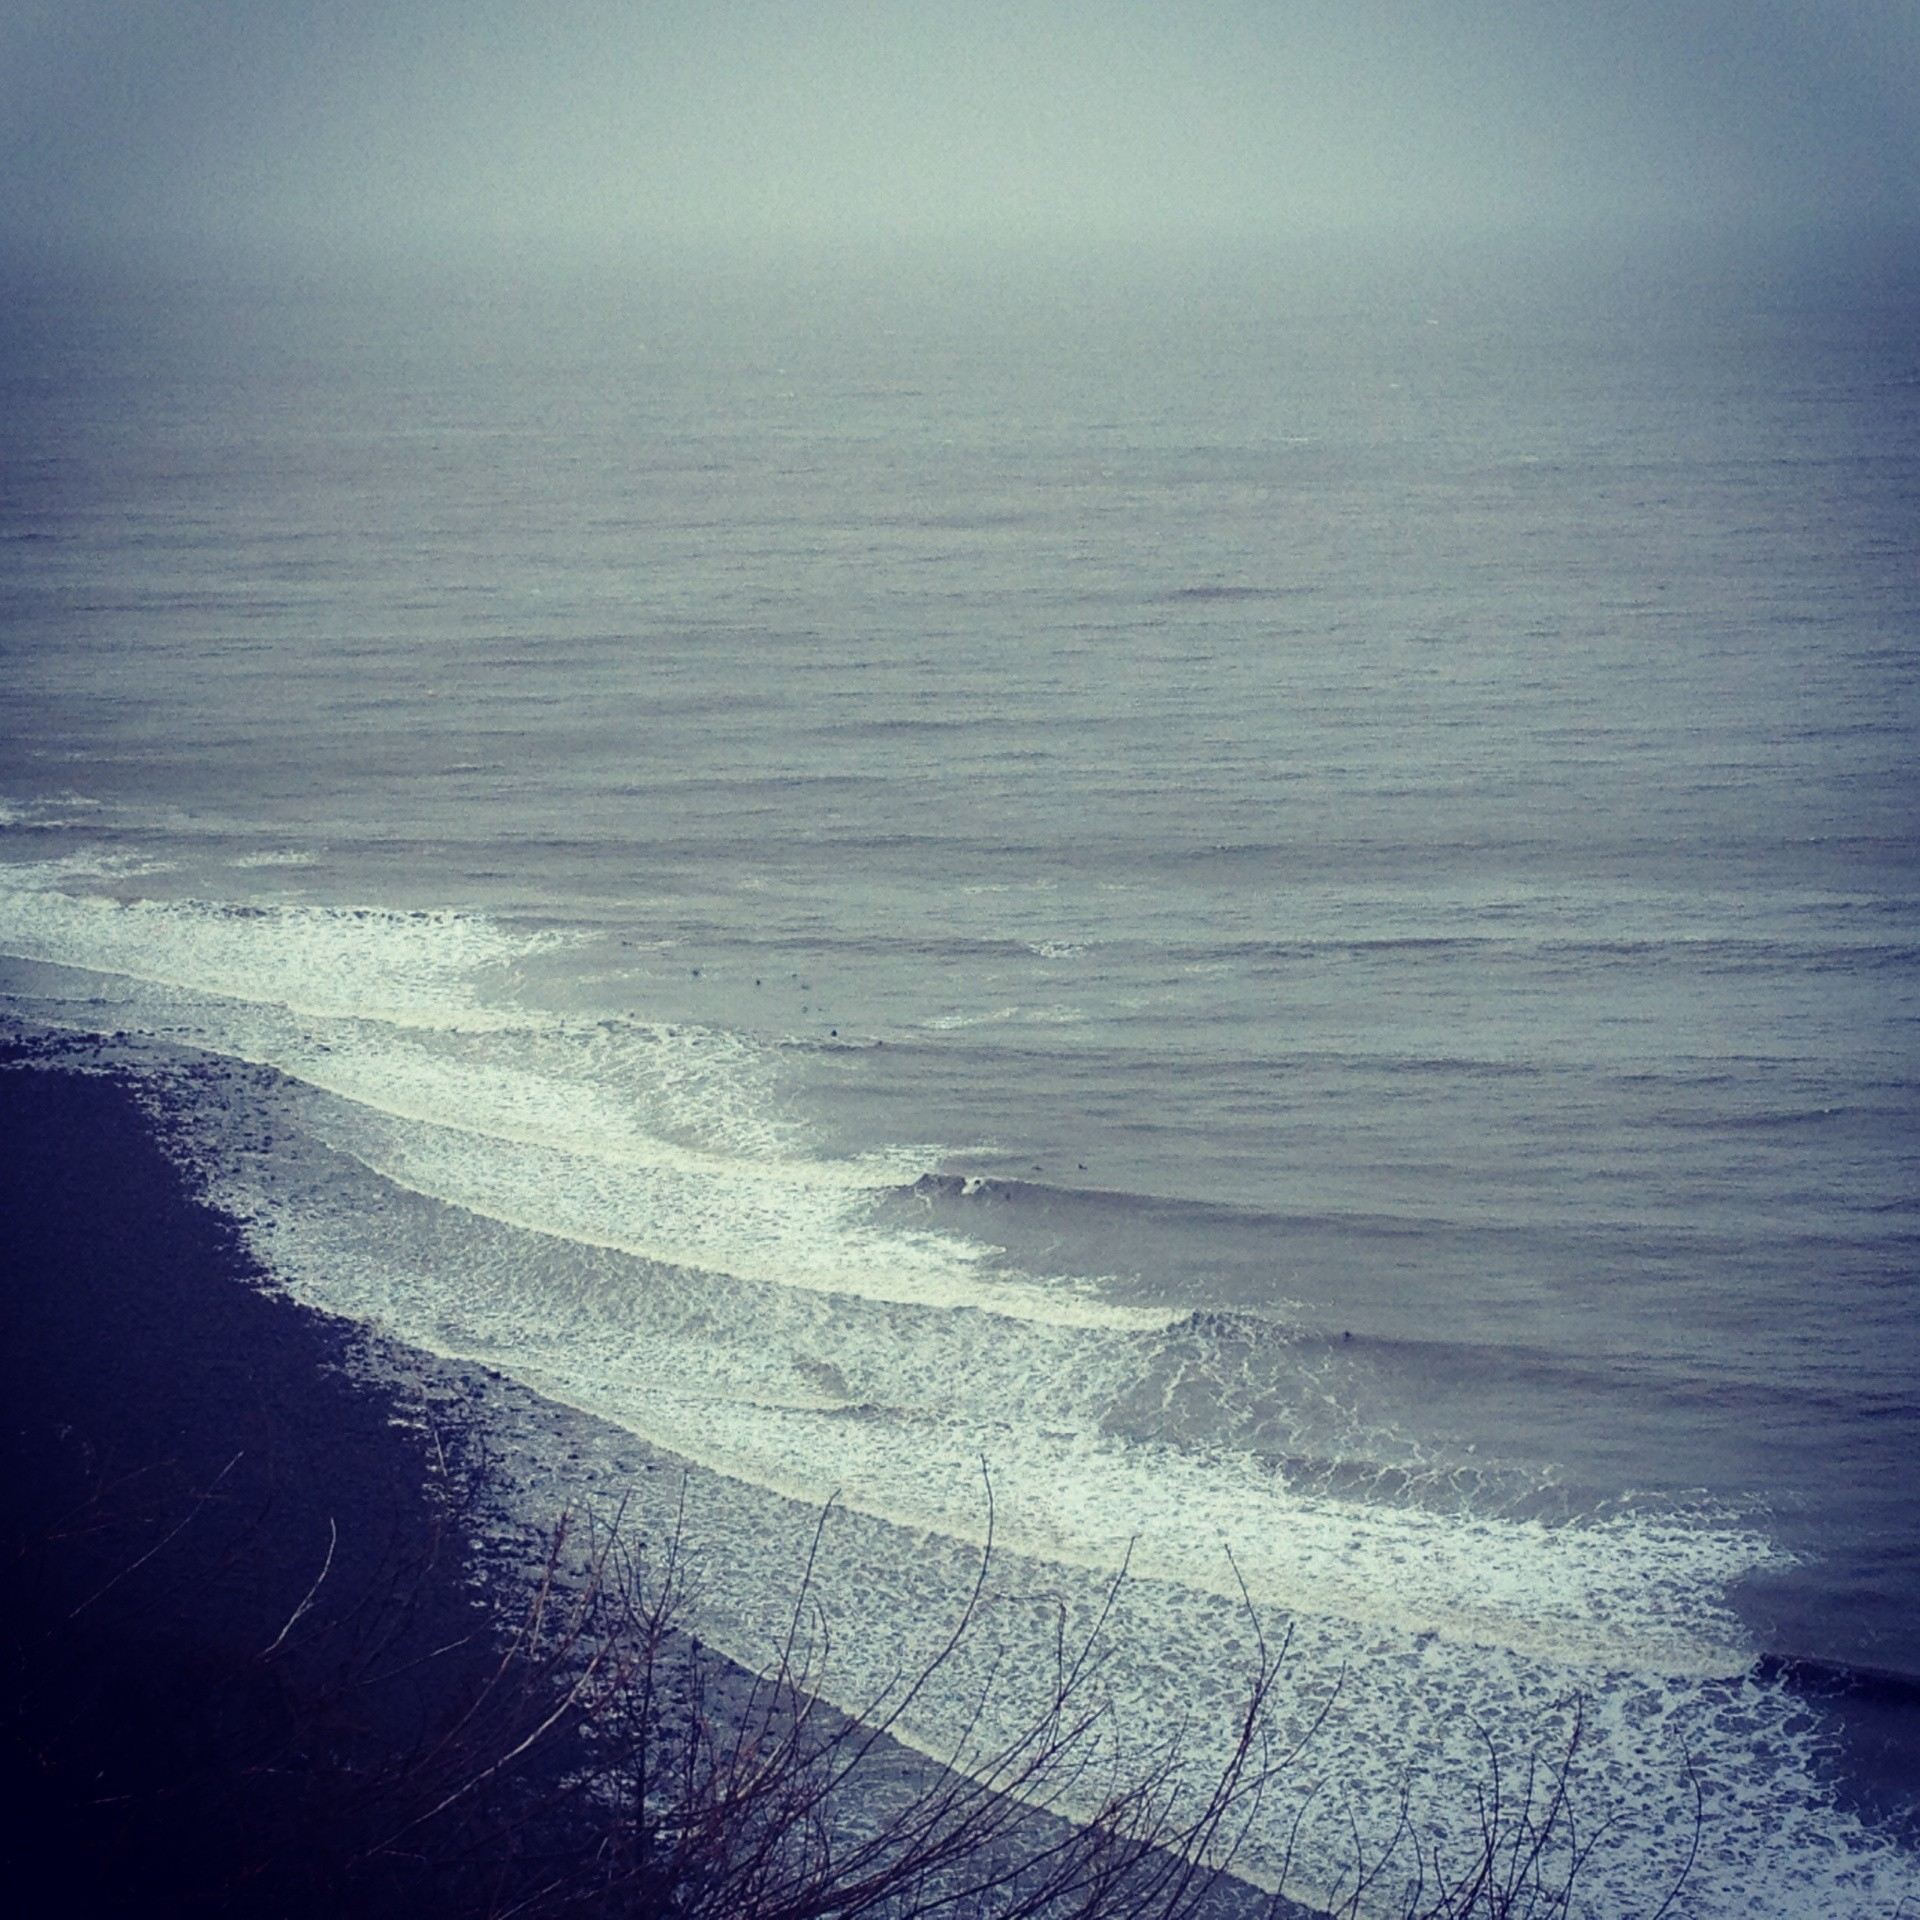 Tdrummer's photo of Lynmouth